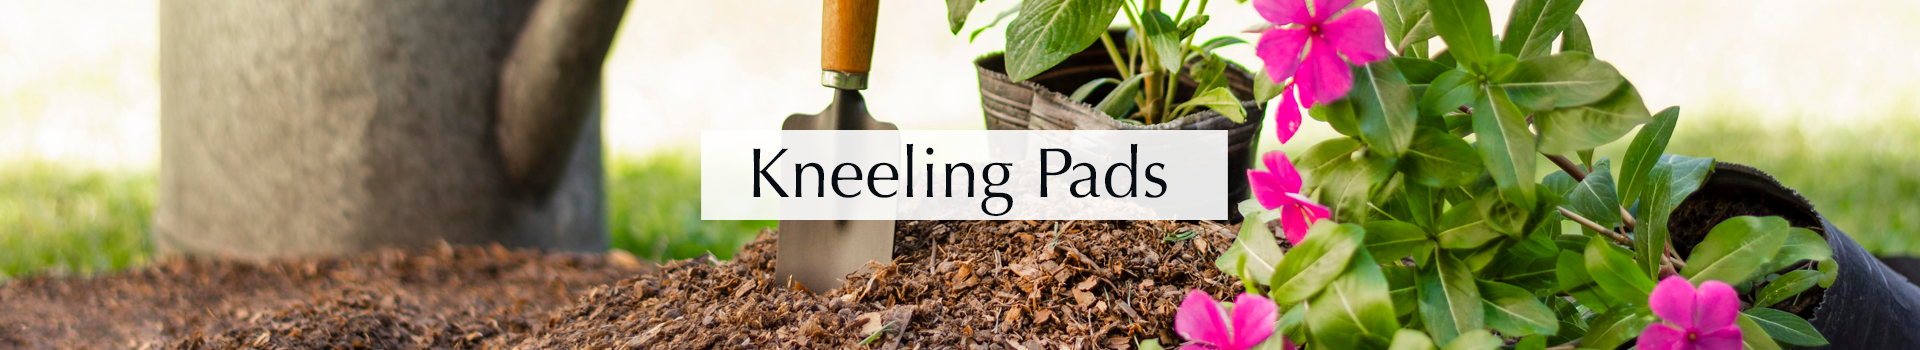 kneeling-pads-category-banner.png